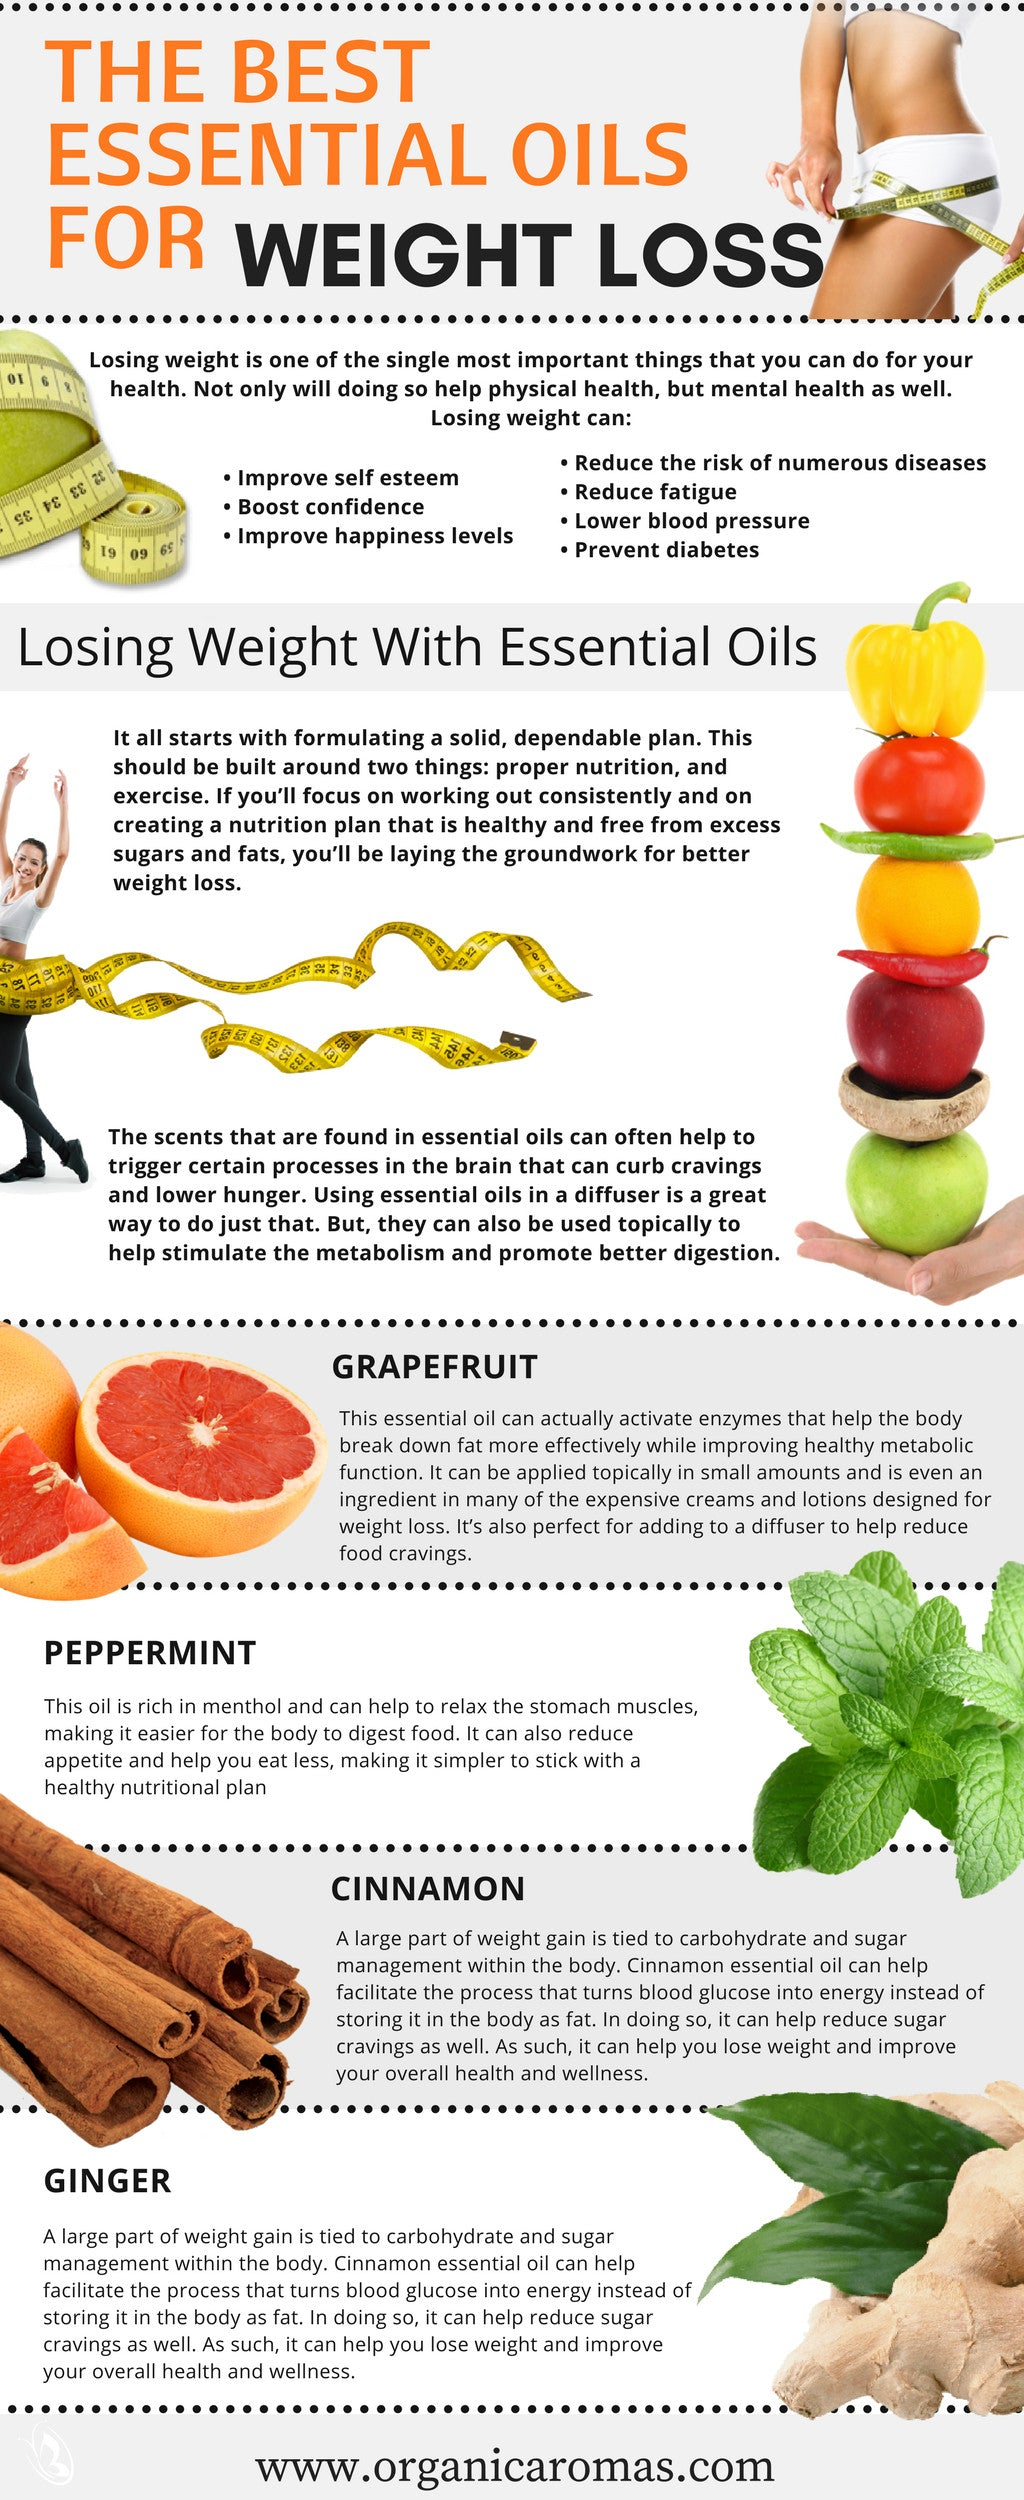 The Best Essential Oils For Weight Loss Organic Aromas